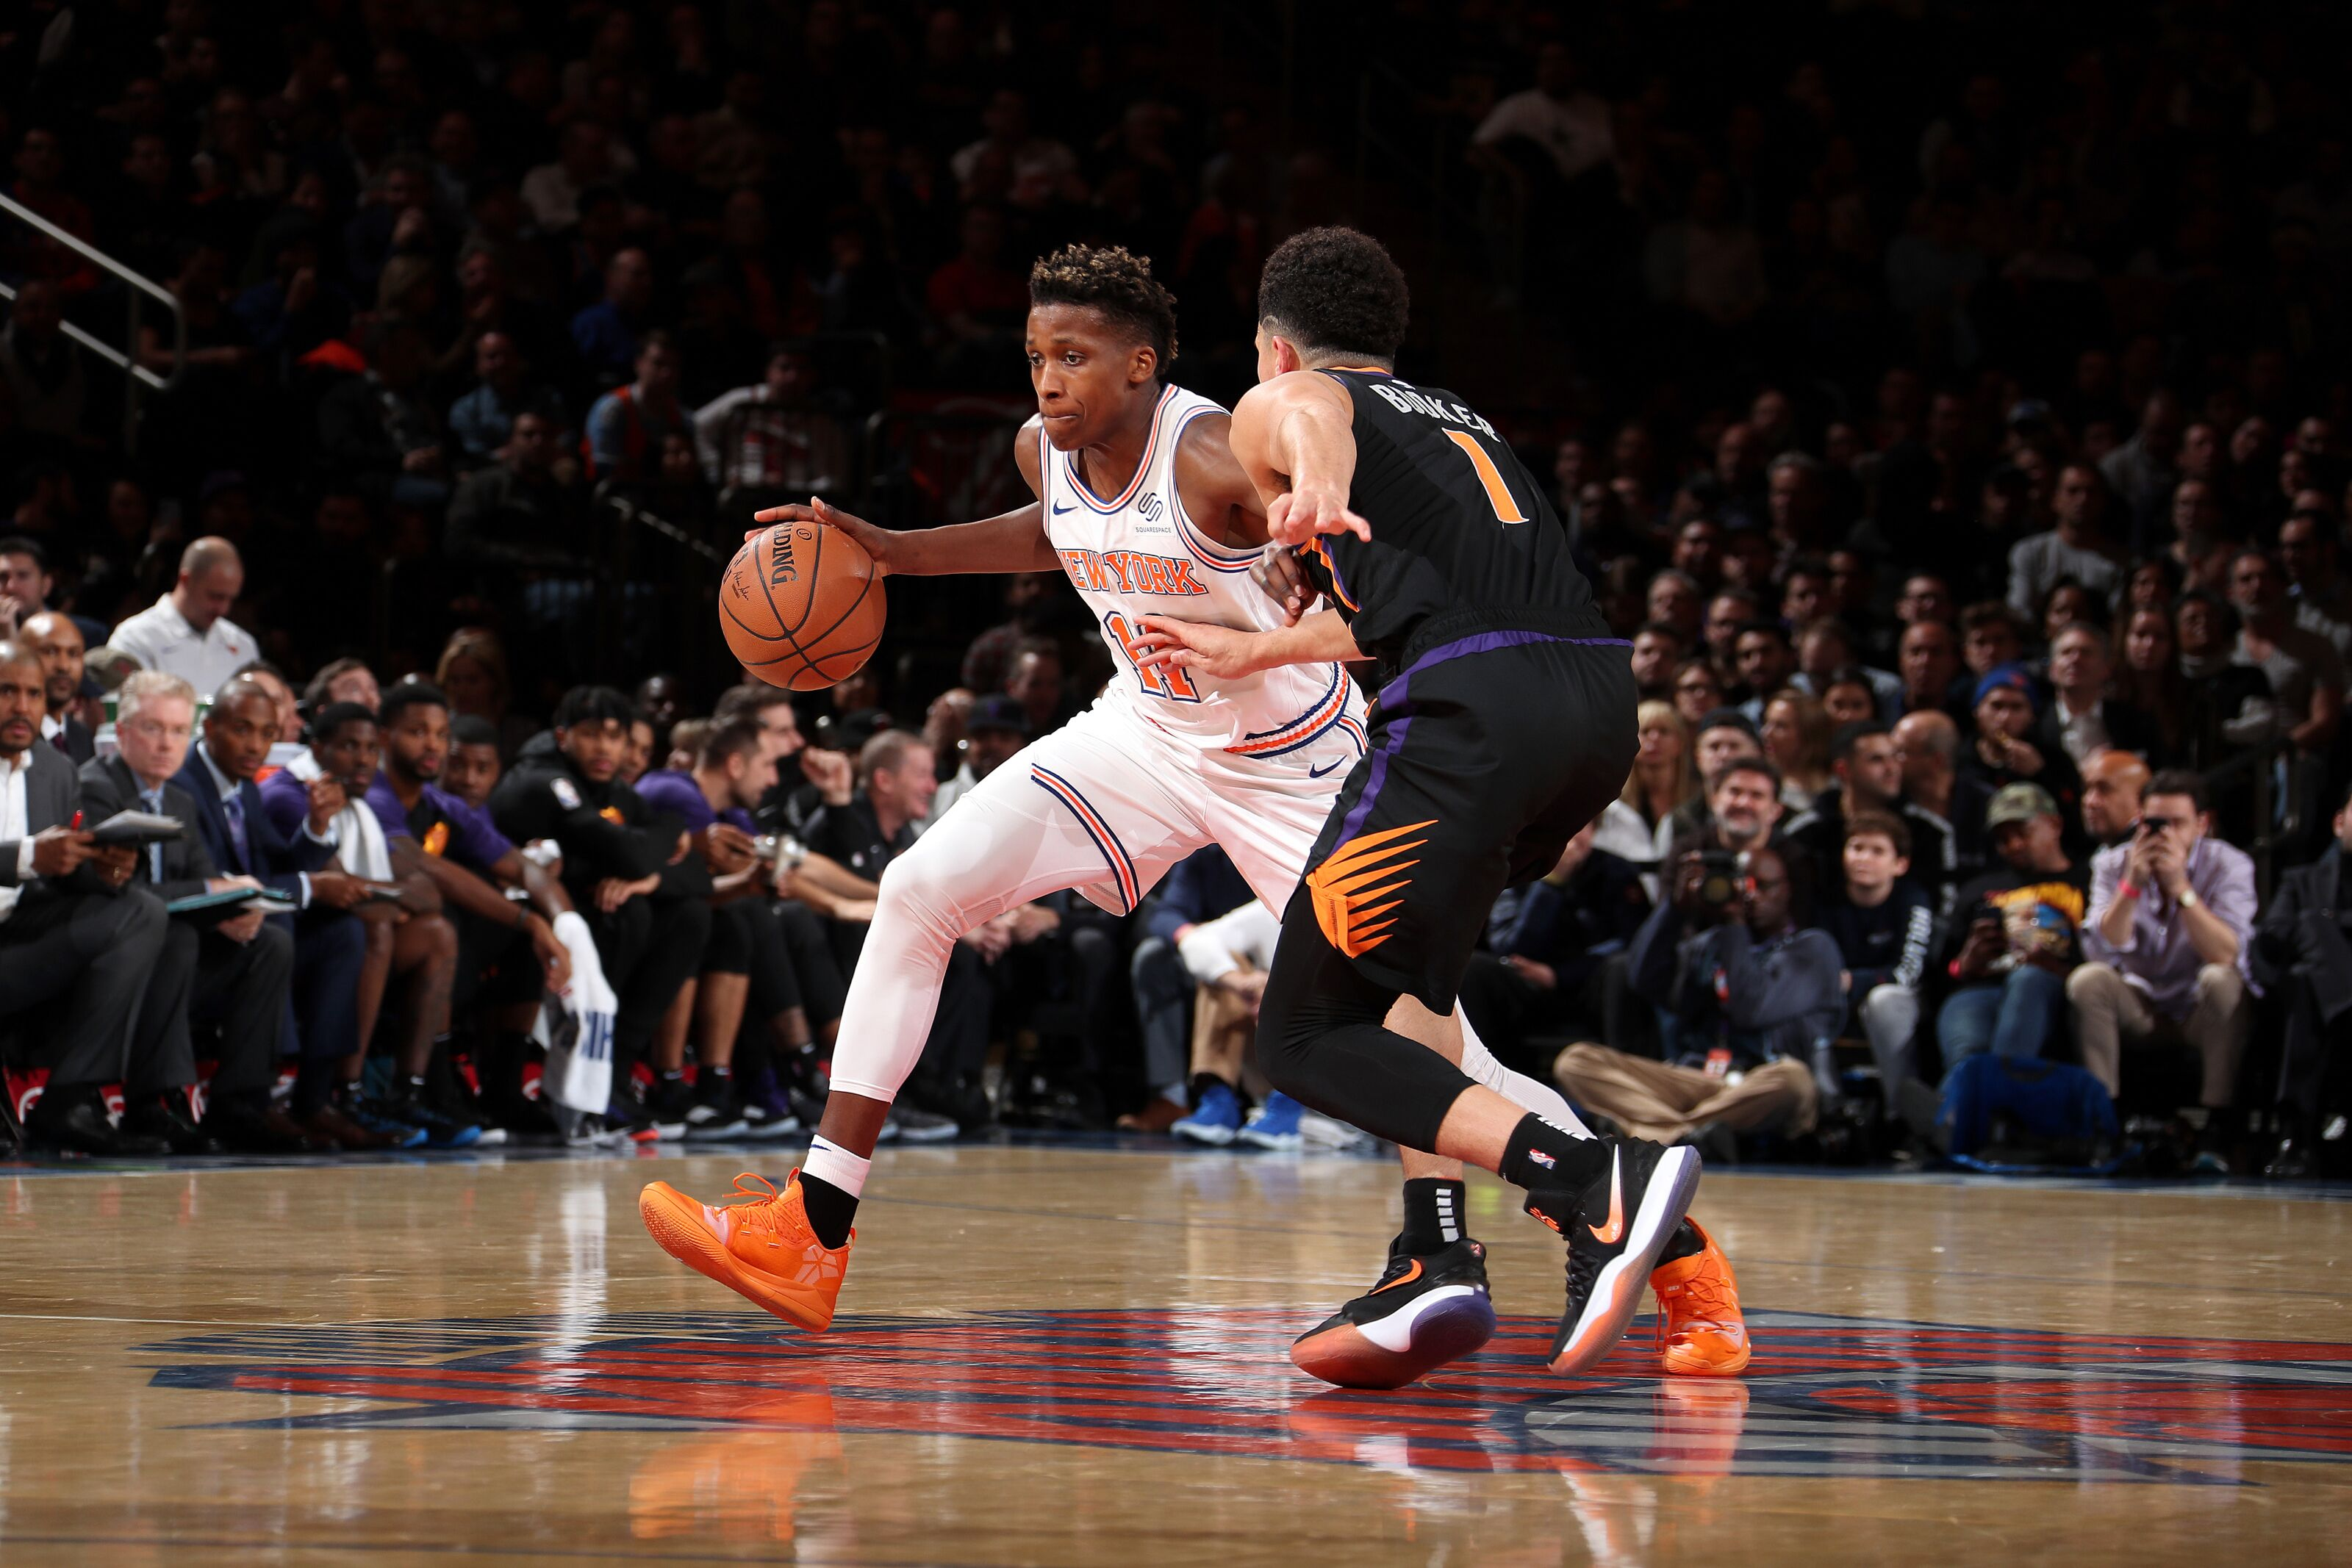 The Phoenix Suns should trade their second round pick for Frank Ntilikina